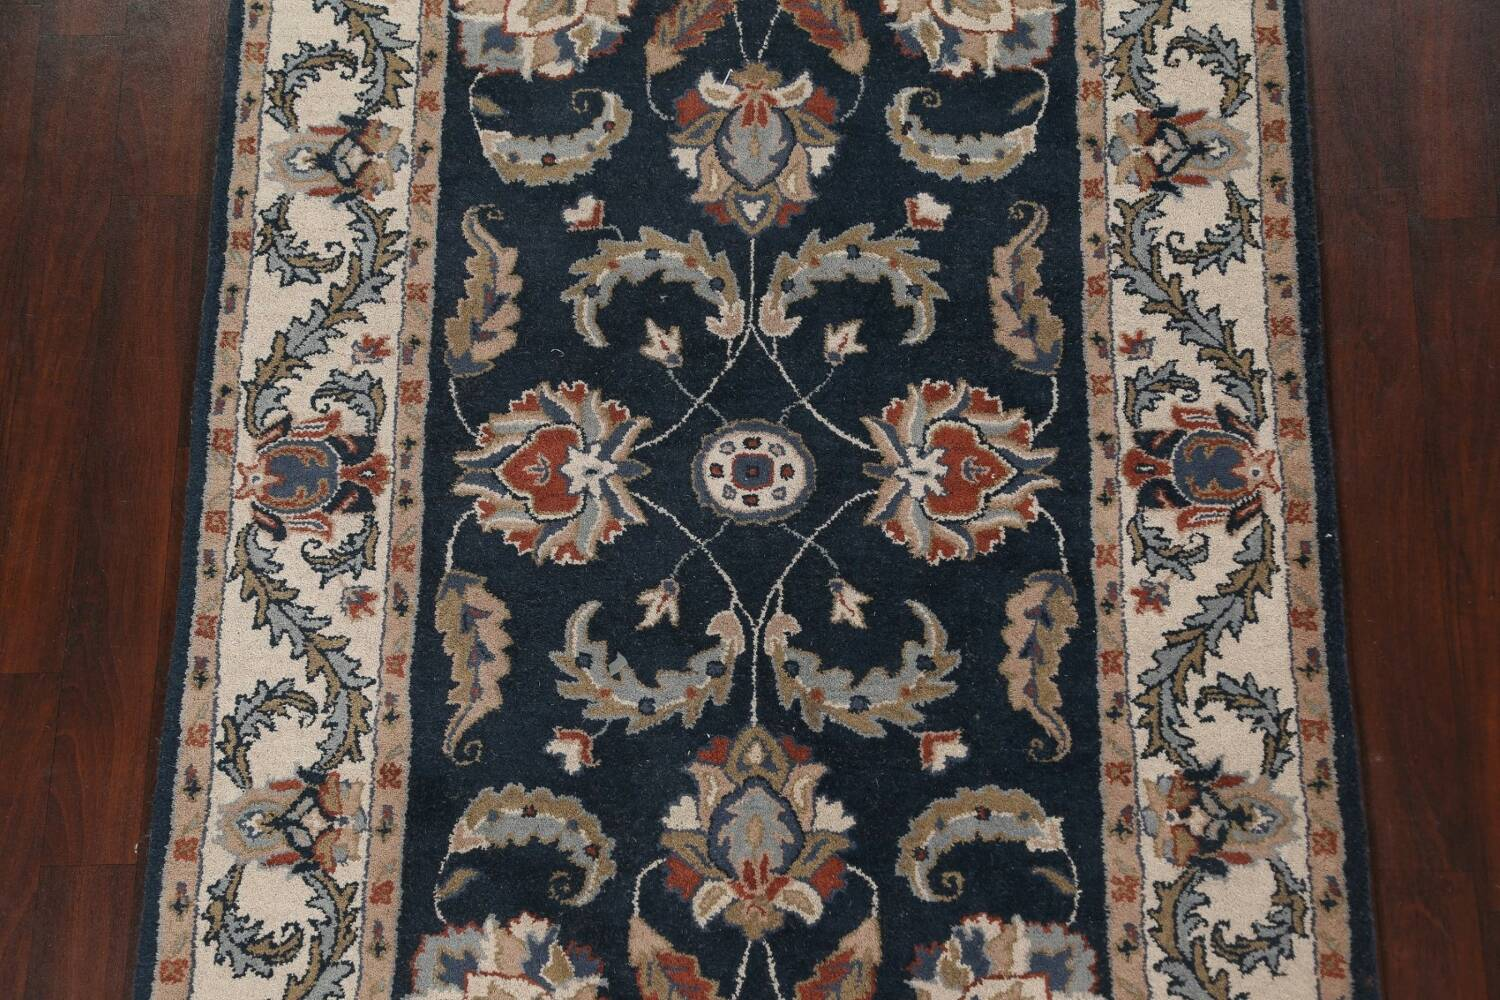 Floral Agra Wool Area Rug 5x8 image 4